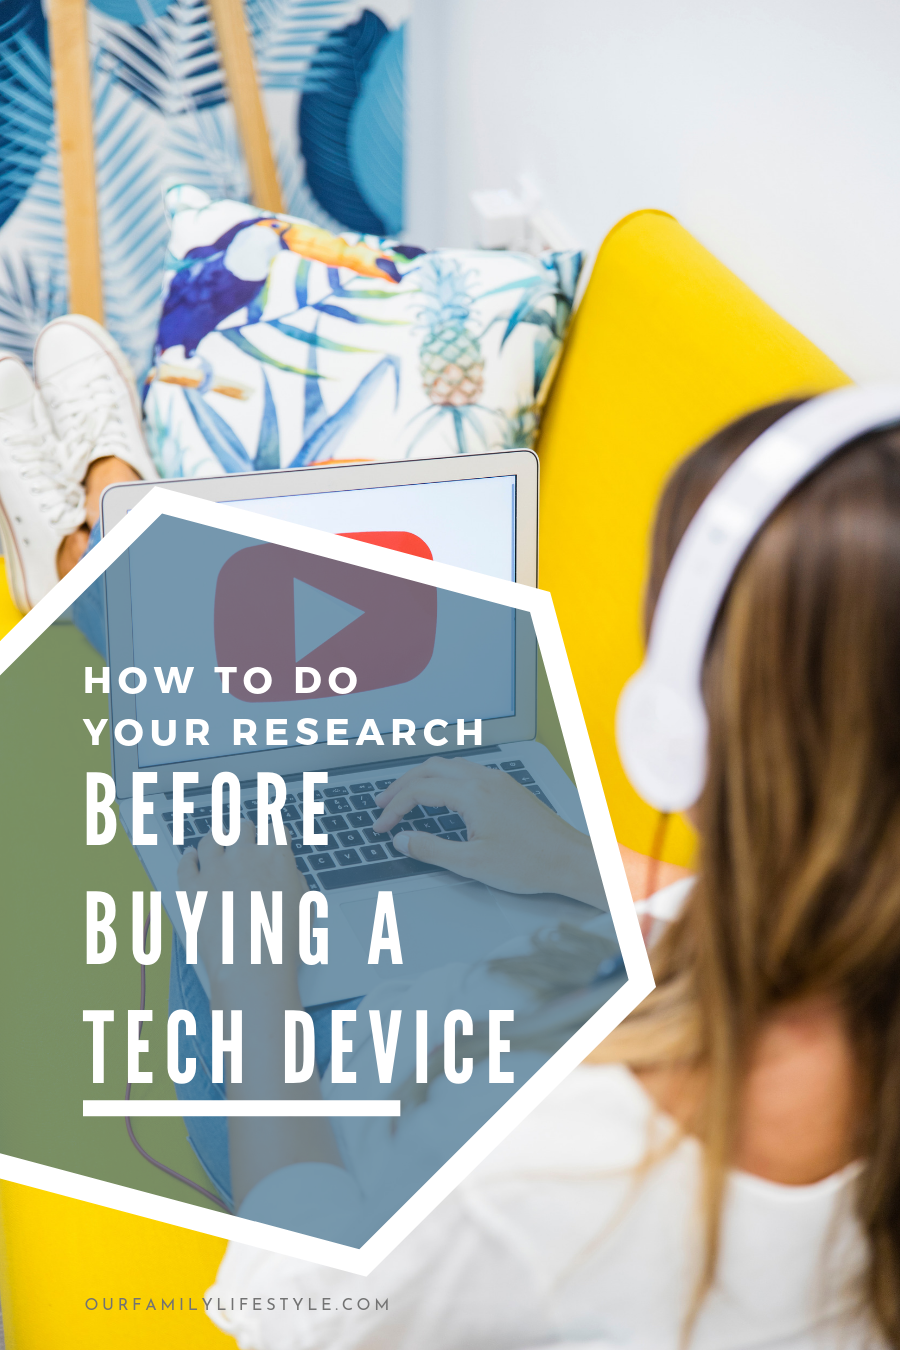 How To Do Your Research Before Buying A Tech Device